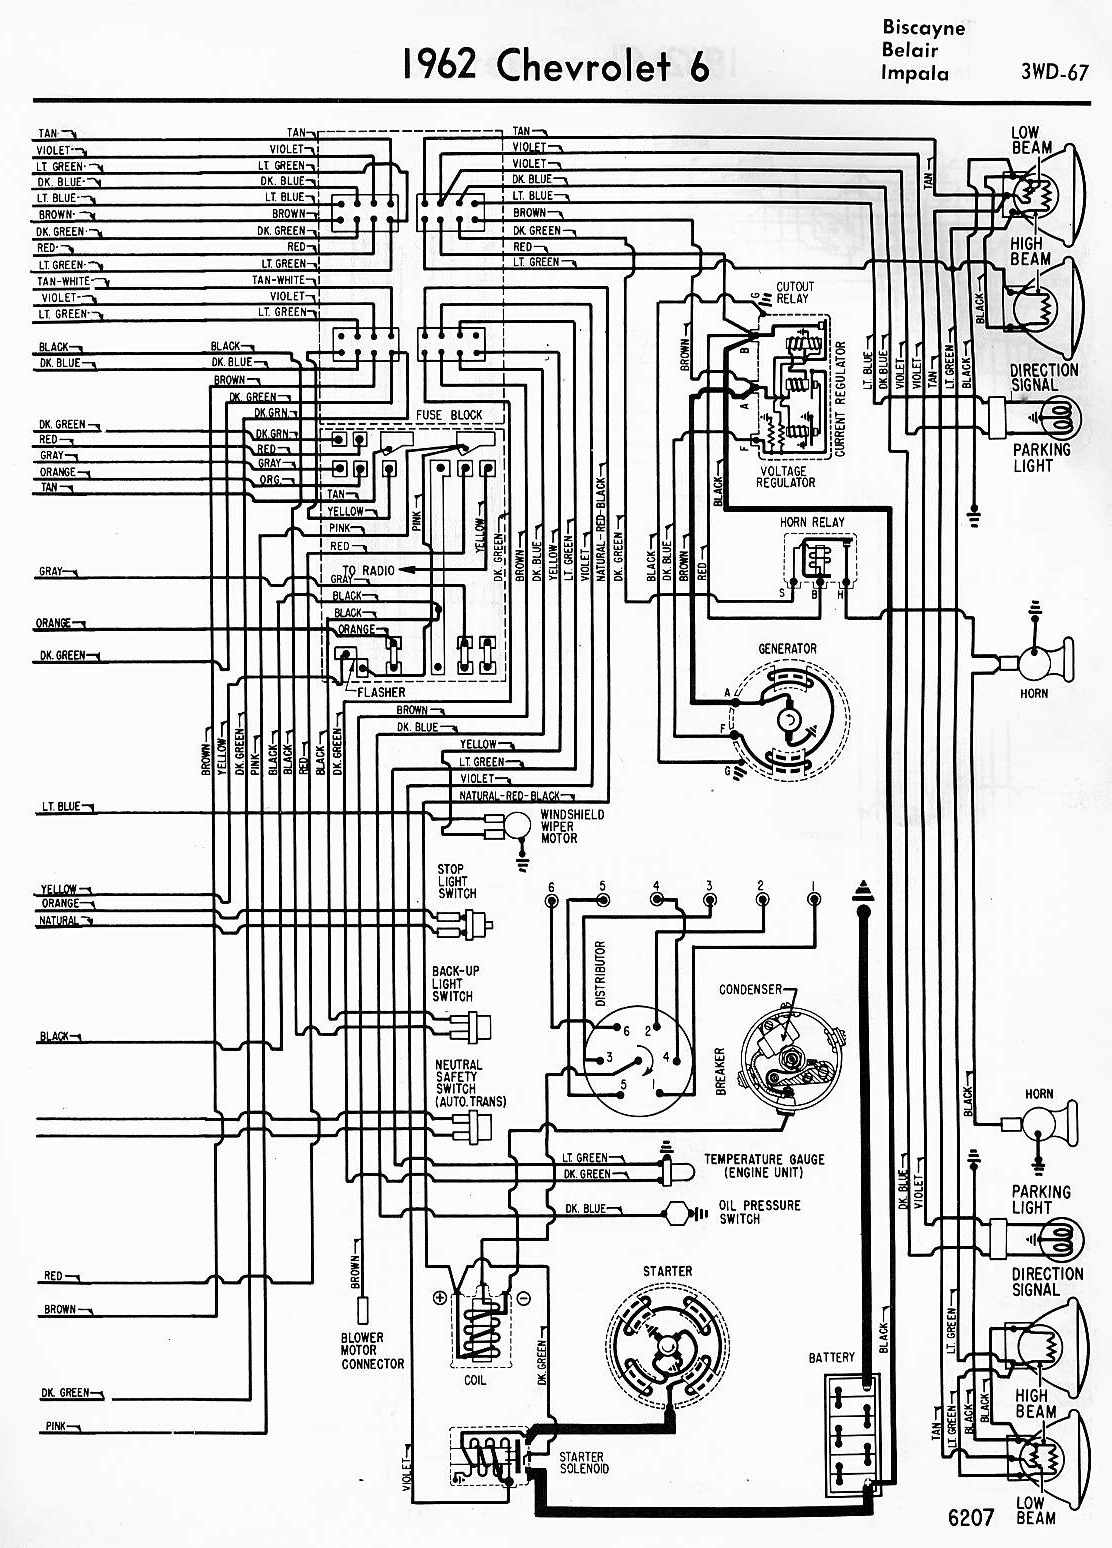 Electrical+Wiring+Diagram+Of+1964+Chevrolet+6 newport wipers wiring diagram pin wiring diagram \u2022 wiring diagrams Chevrolet 350 Wiring Diagram at gsmportal.co